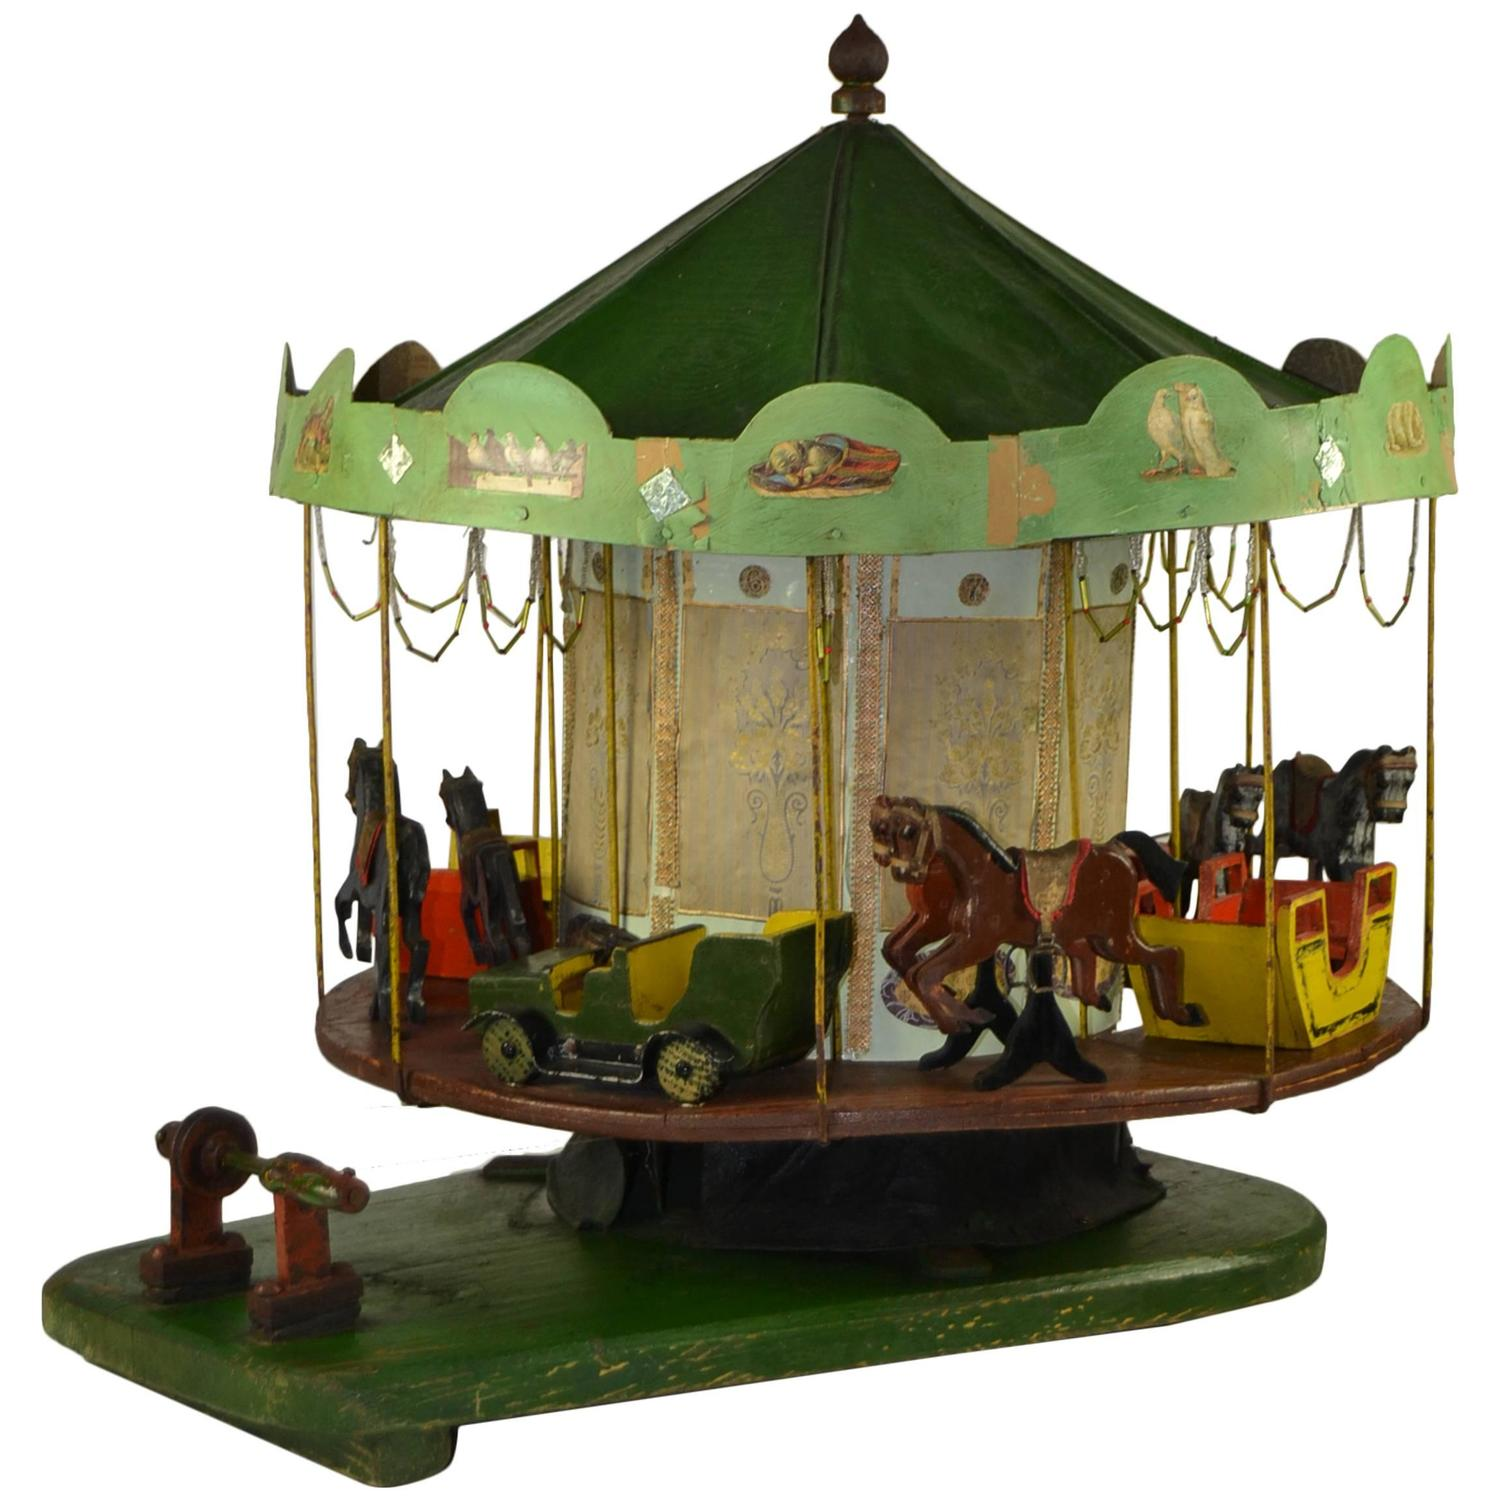 Impressive antique wooden rocking carousel horse sale price for antique diecast folk art merry go round carousel geotapseo Images